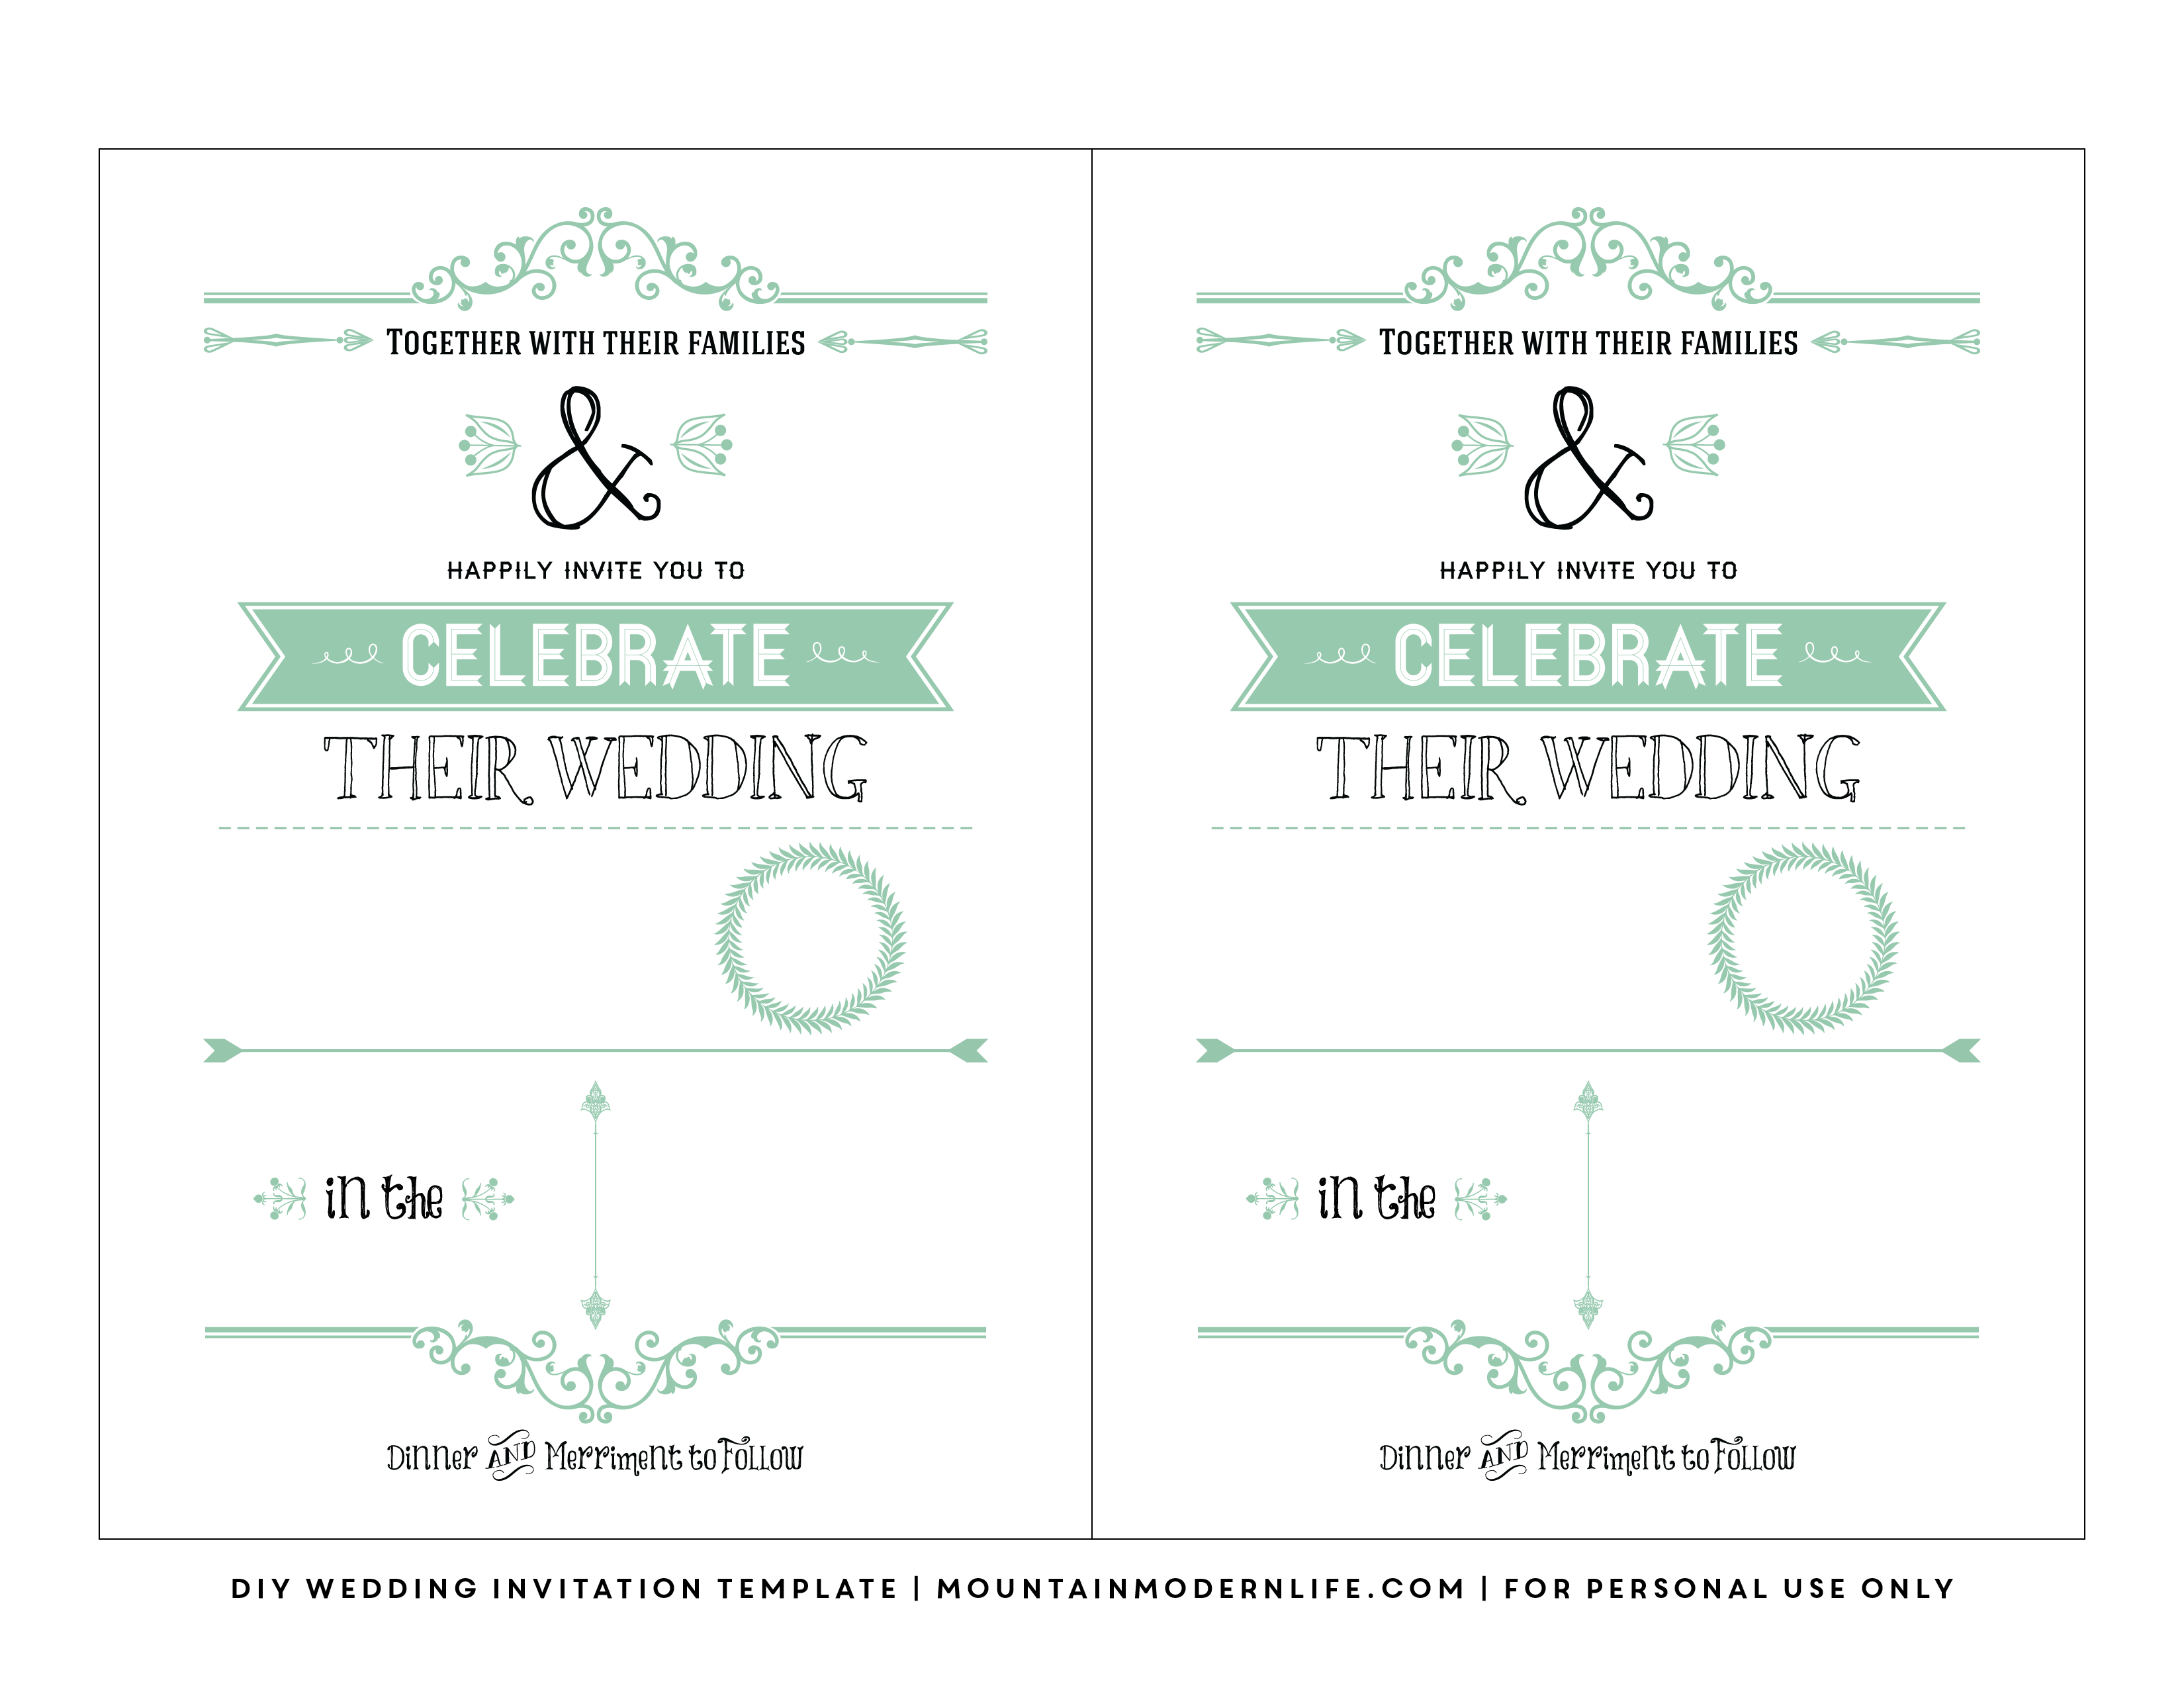 Free Wedding Invitation Template | Mountainmodernlife - Free Printable Wedding Invitation Templates